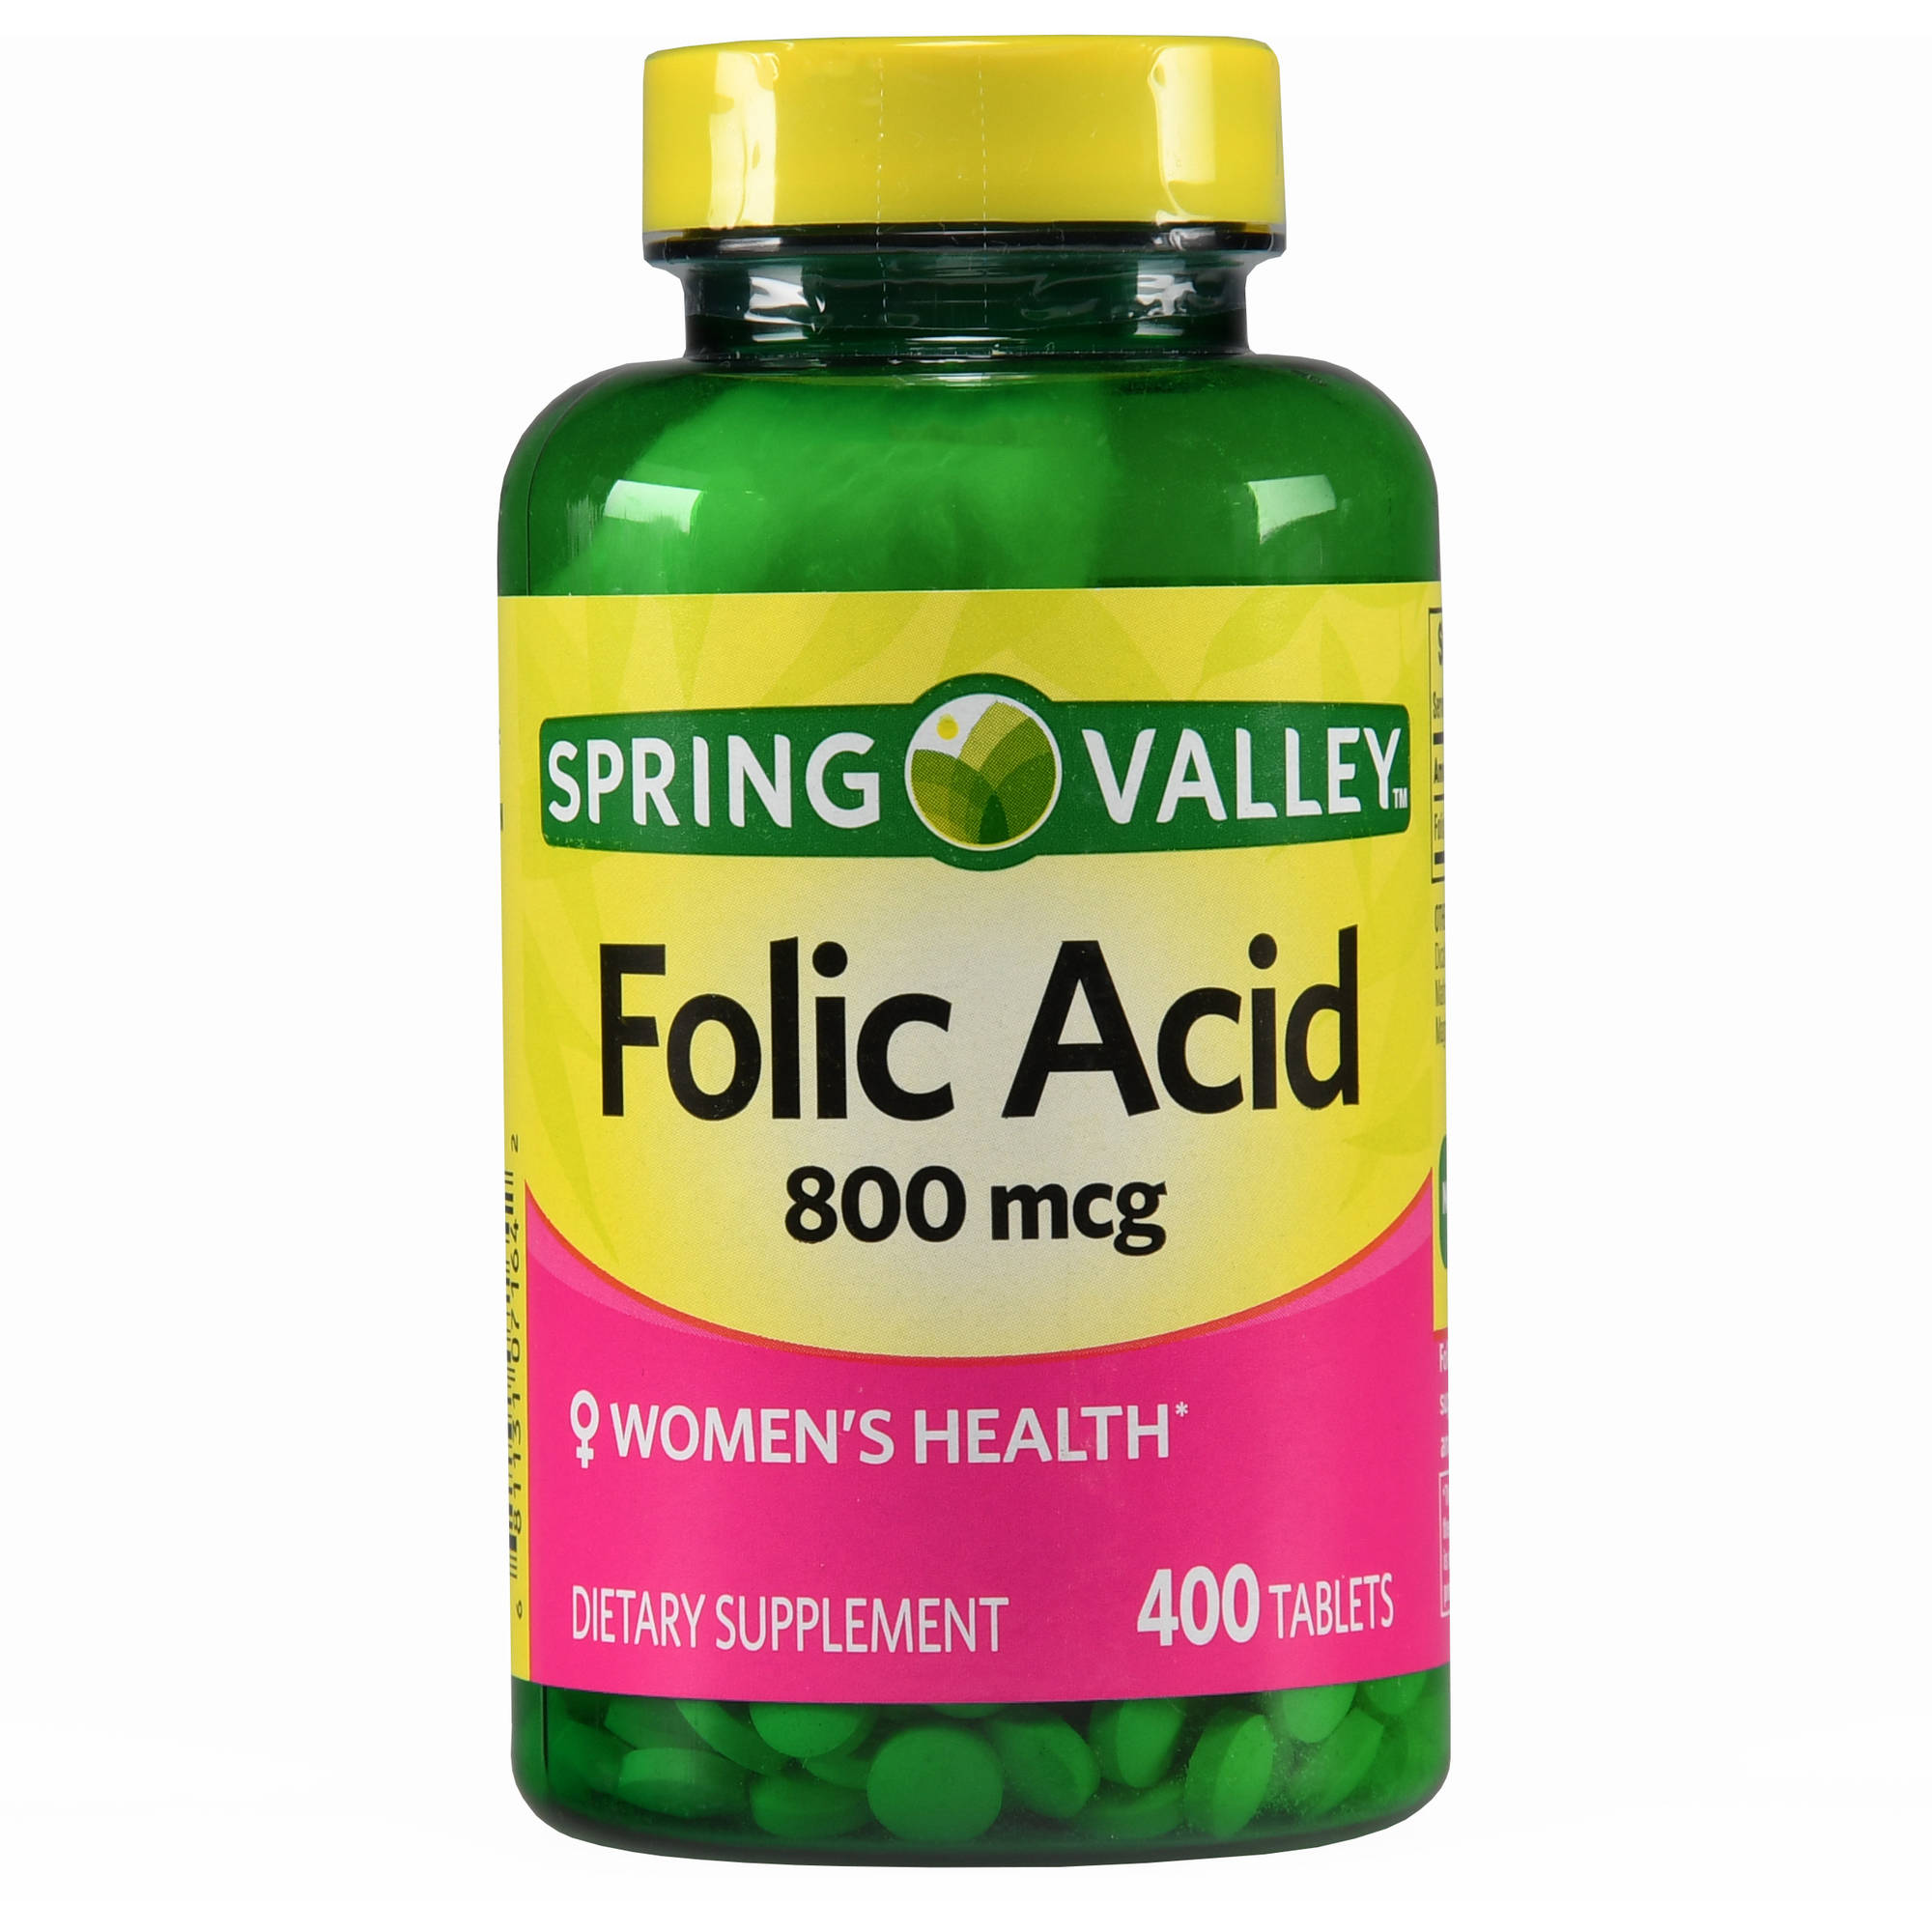 Spring Valley Folic Acid Dietary Supplement Tablets, 800 mcg, 400 count